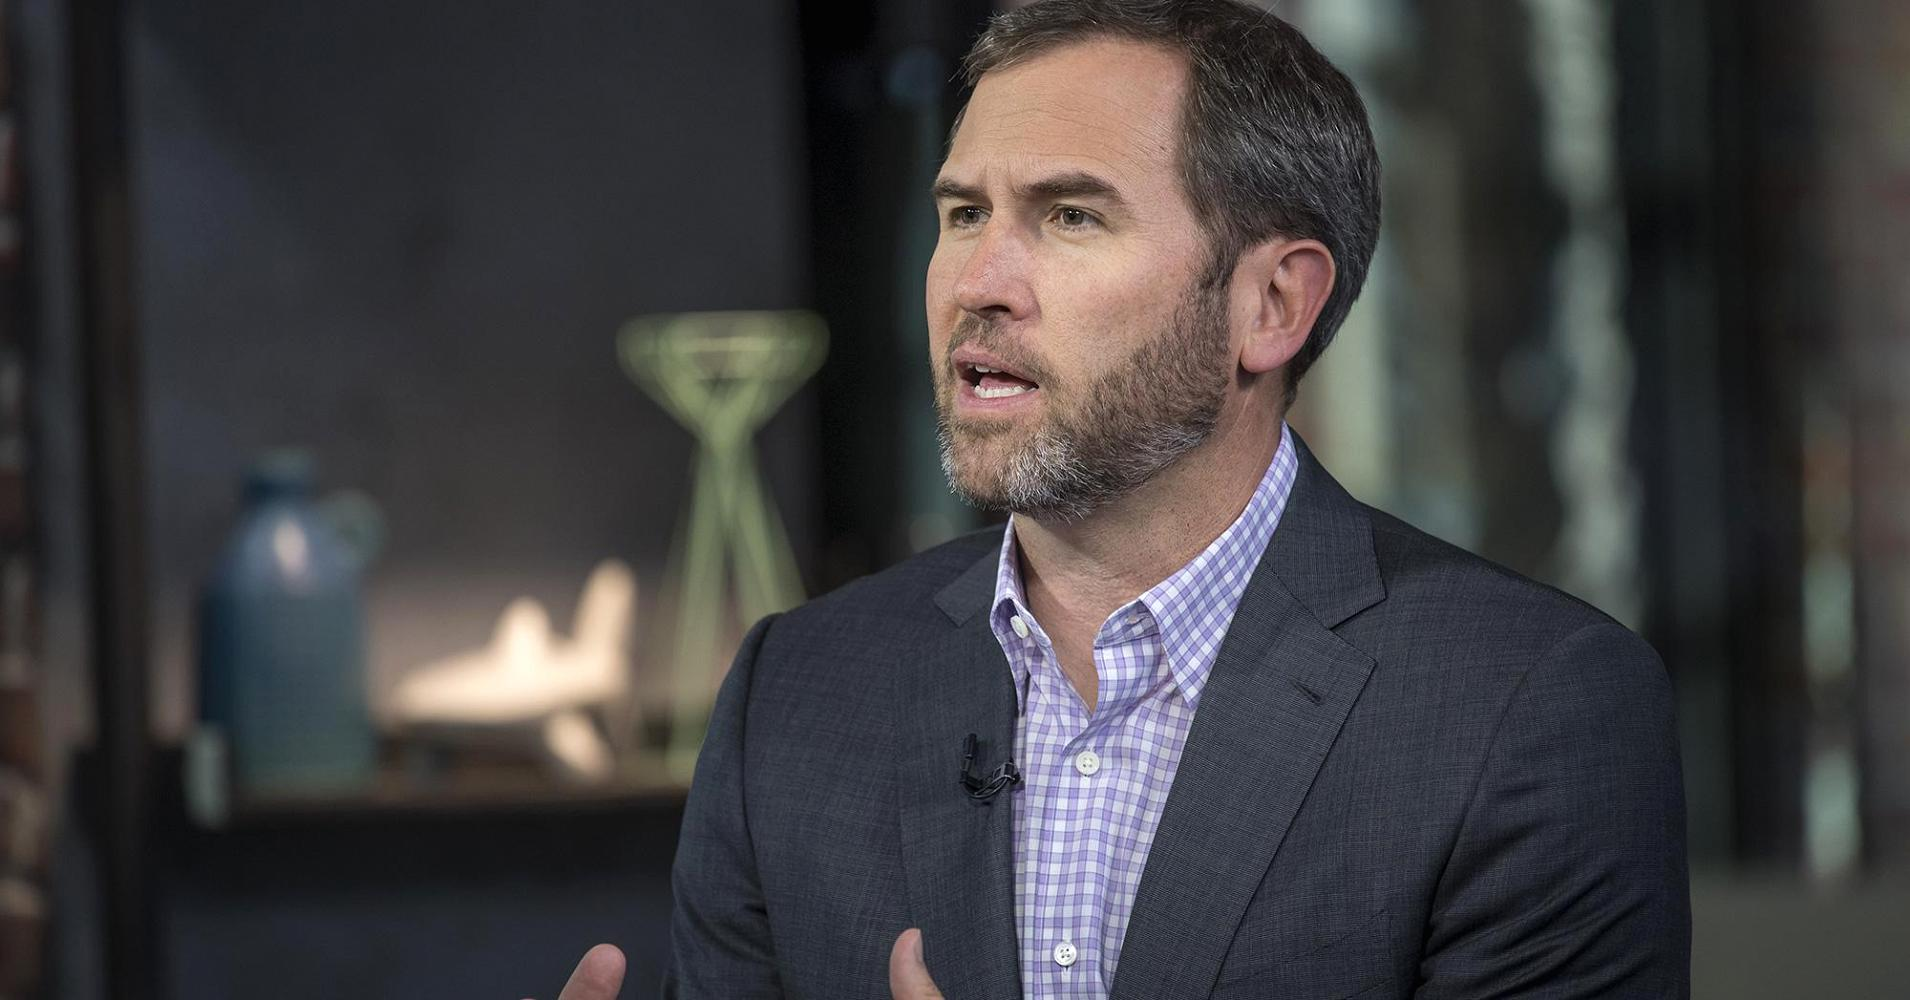 garlinghouse ripple xrp